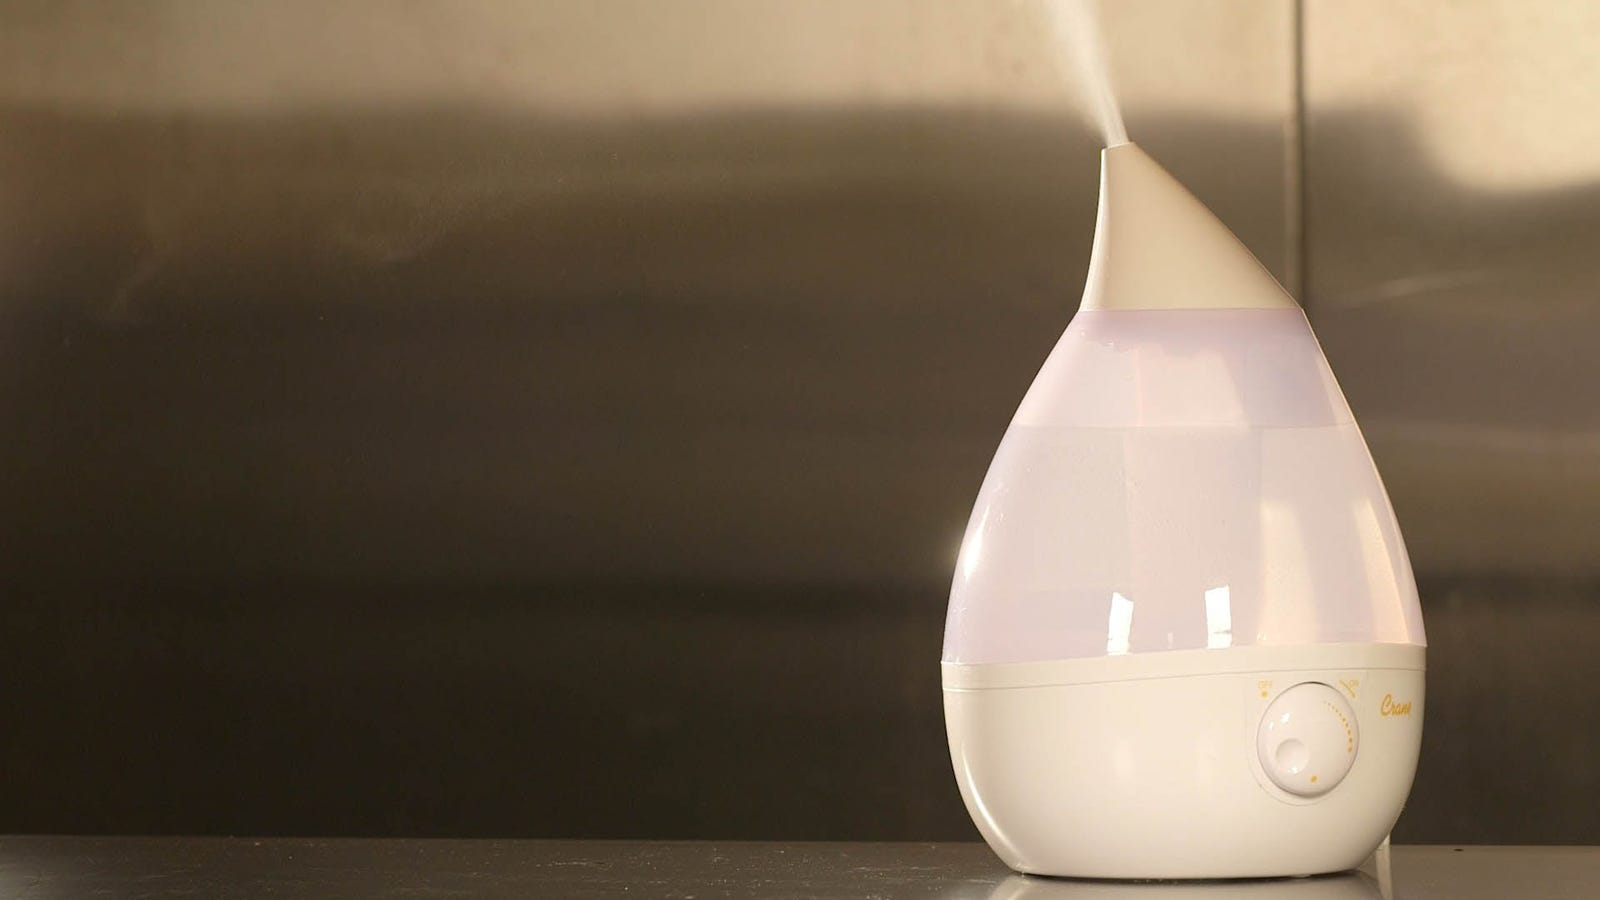 Choose The Right Humidifier For Your Room With This Video